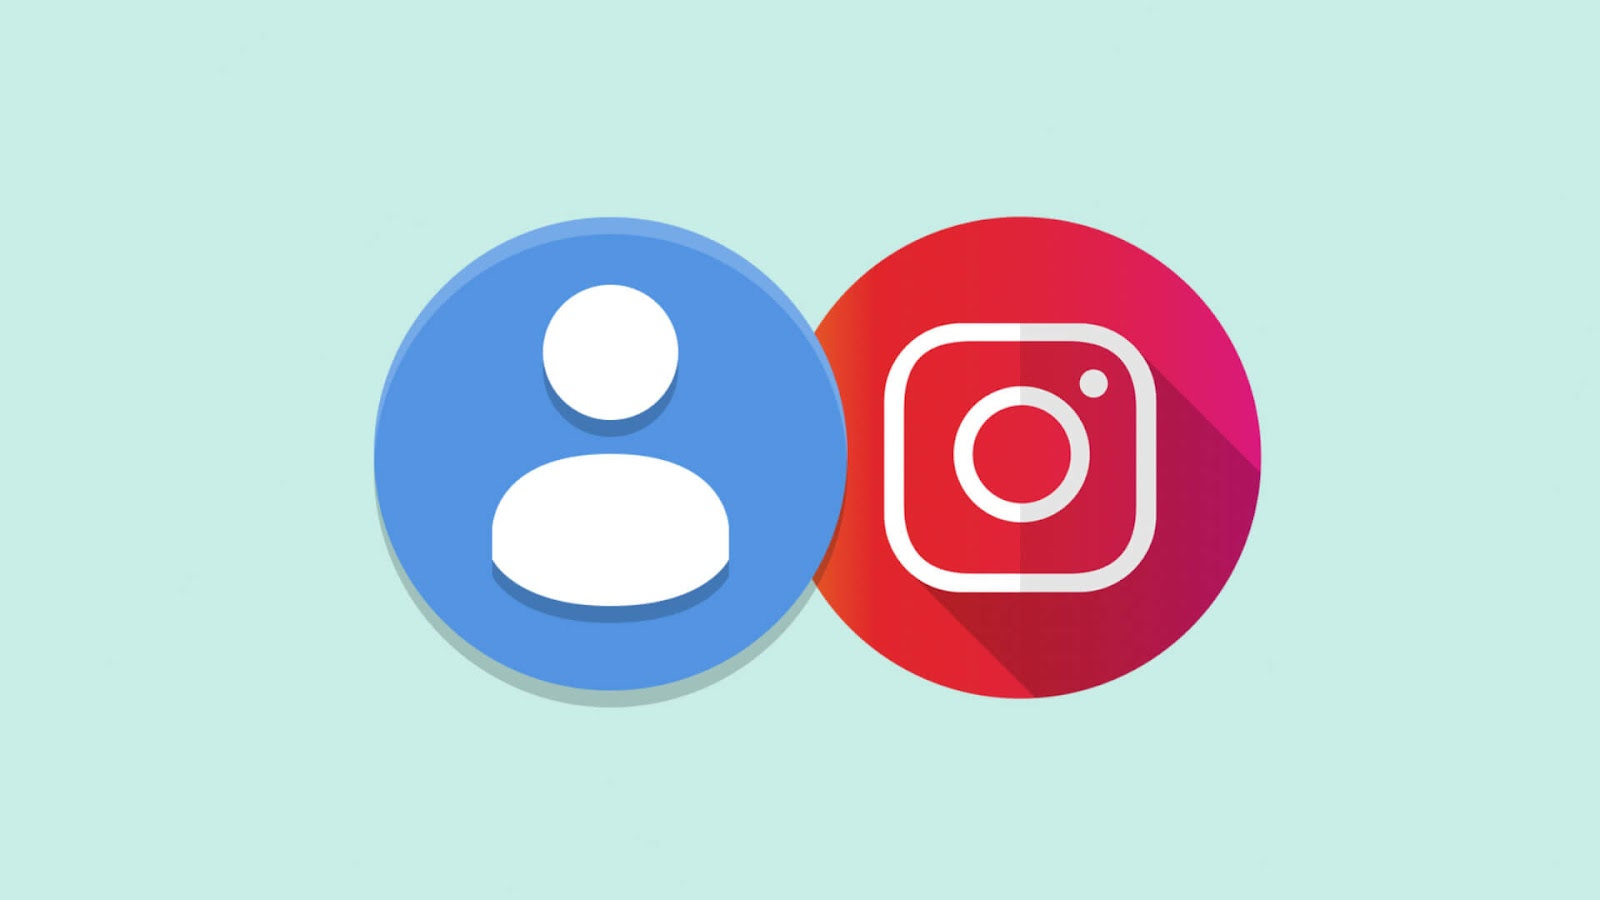 Find people on Instagram with phone numbers